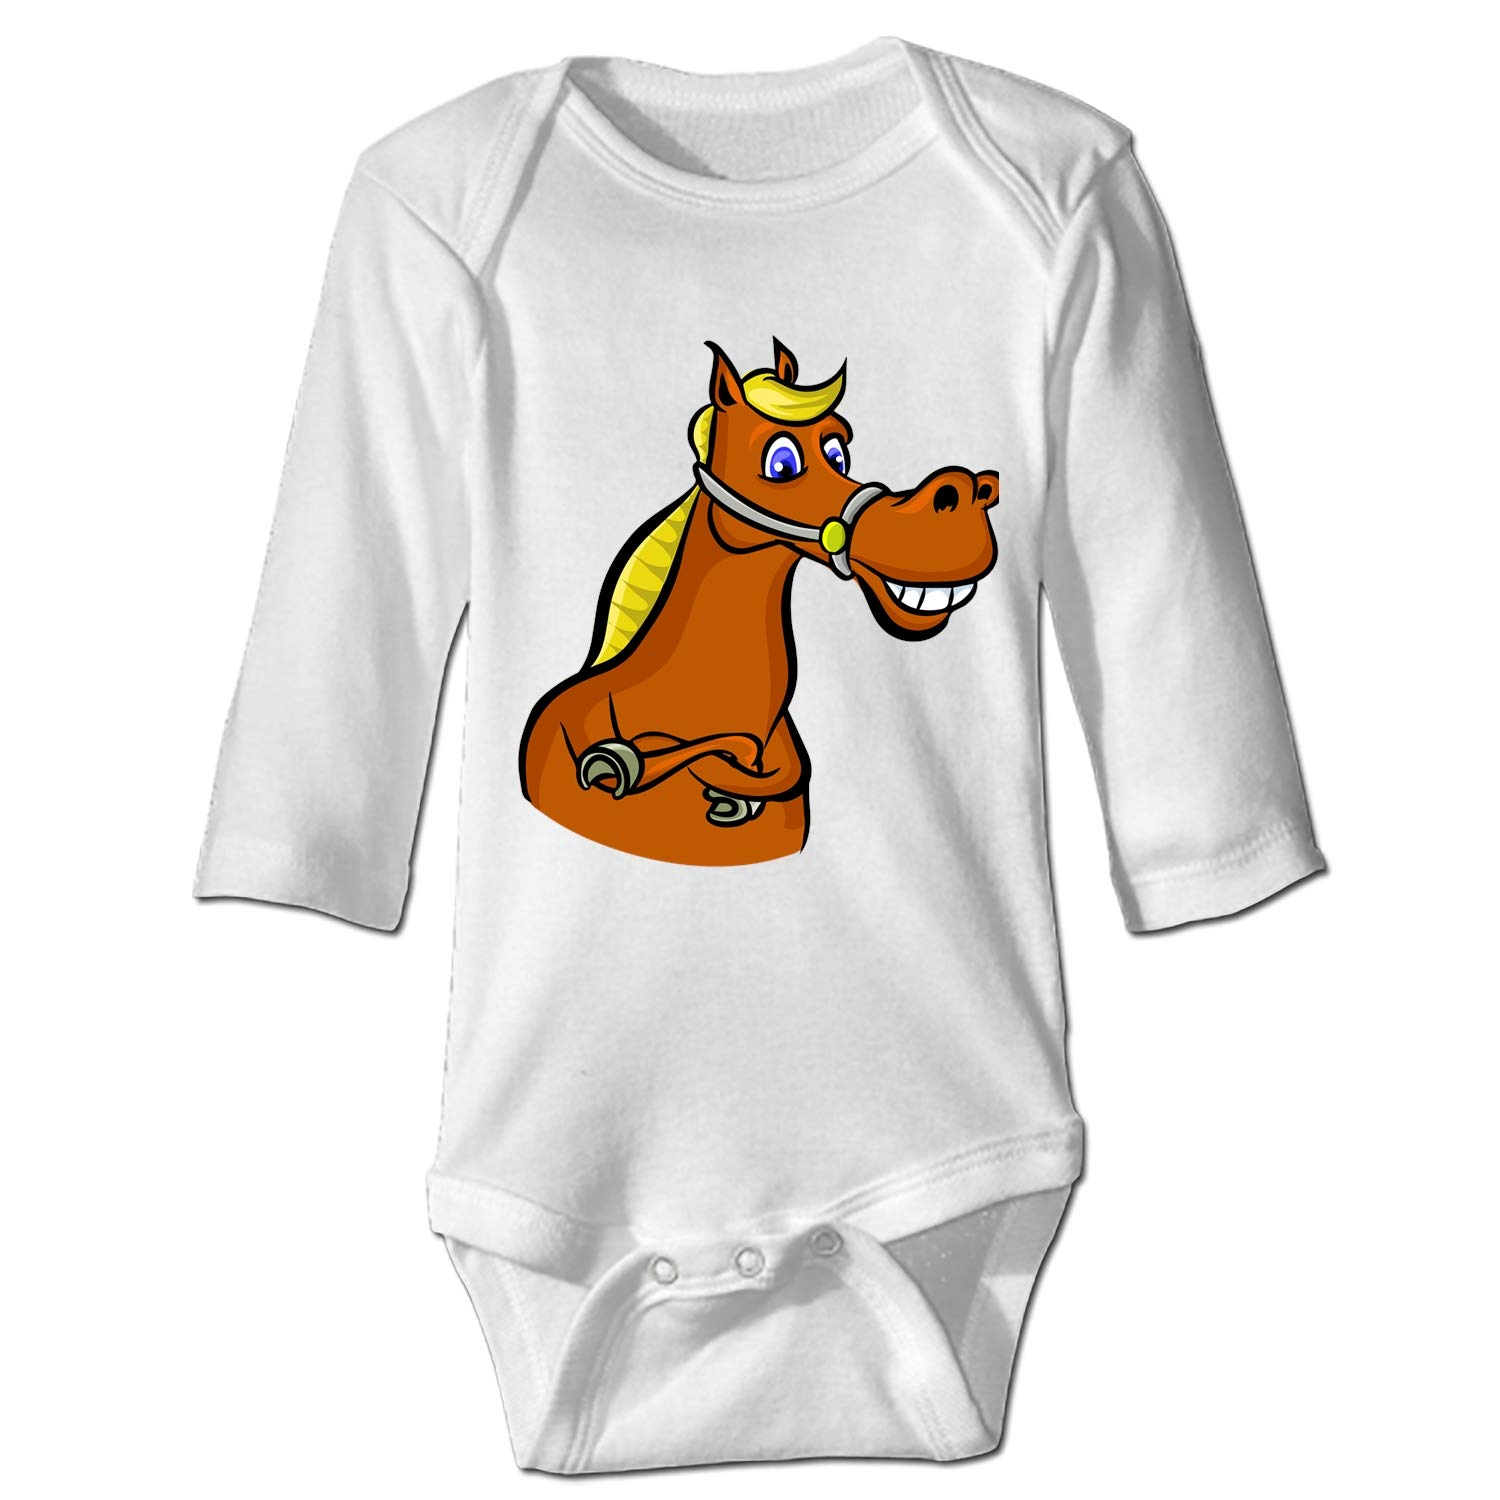 Imiss Colorful Cartoon Horse Baby Bodysuit One Piece Soft